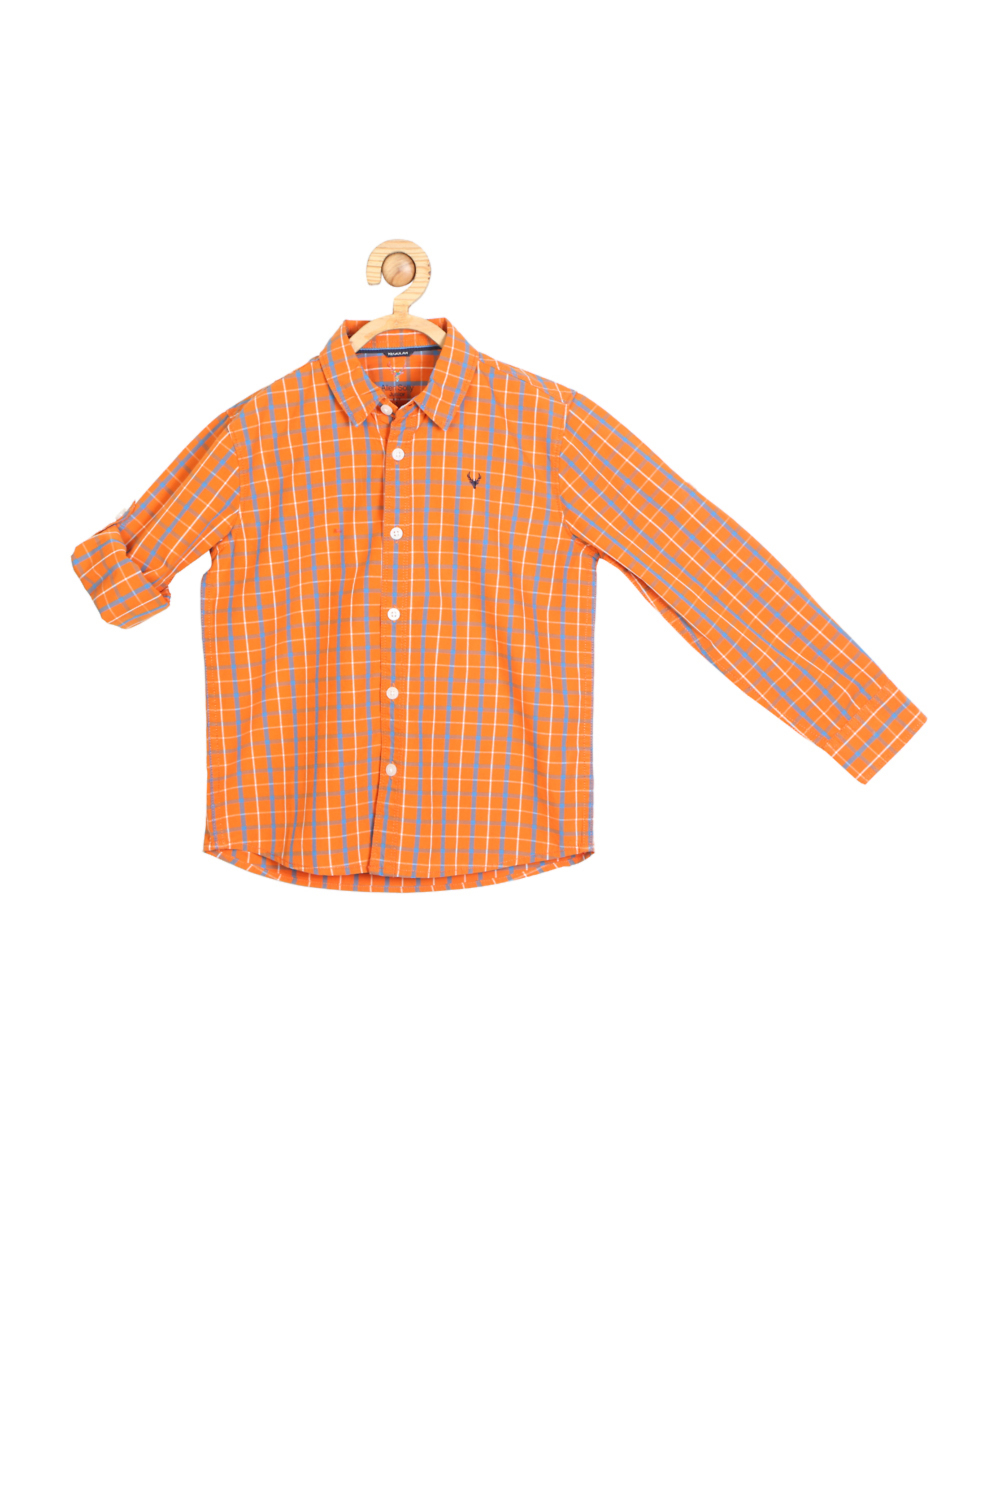 4aa3d150a Allen Solly Junior Shirts & Tees, Allen Solly Orange Shirt for Boys at  Allensolly.com